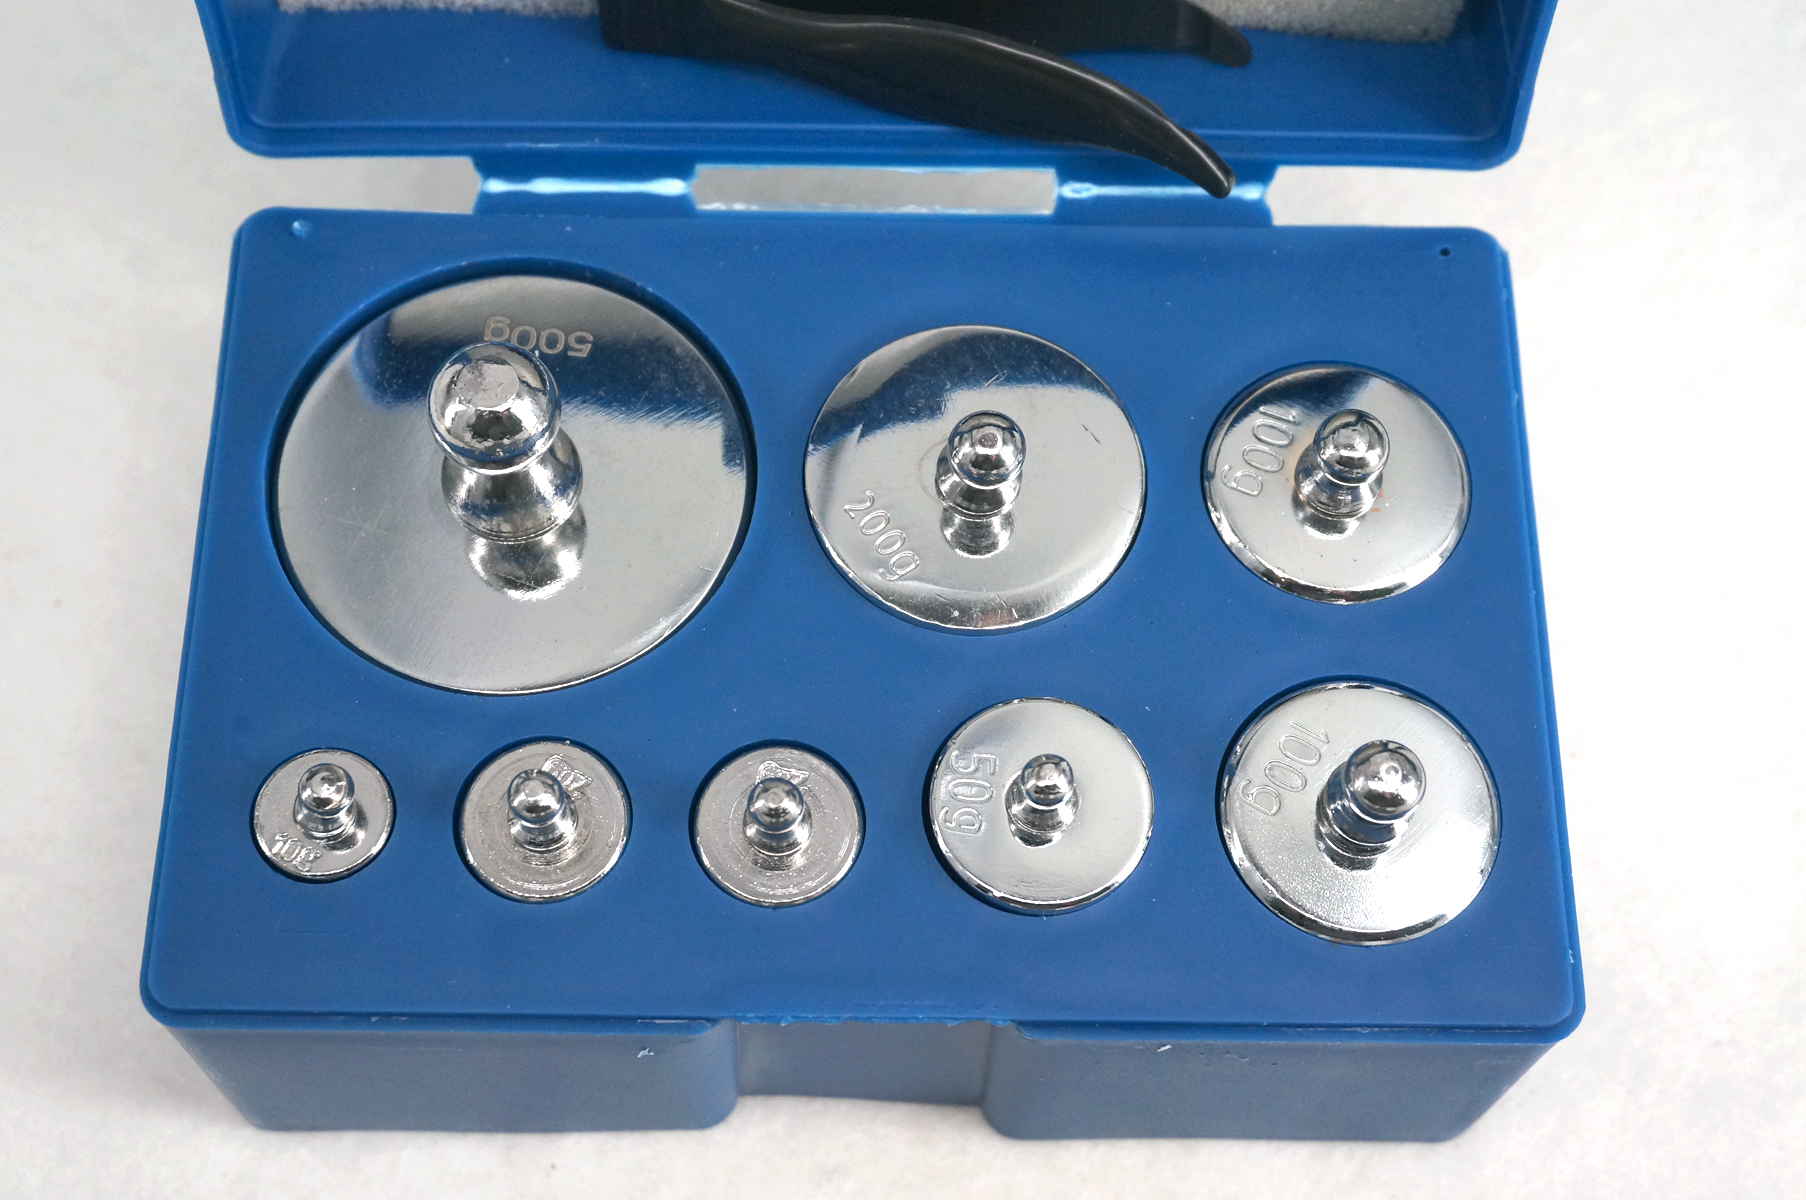 Box Of Set Include 10g 20g*2 50g 100g*2 200g 500g Total 1000g Chrome Plating Steel Calibration Weight